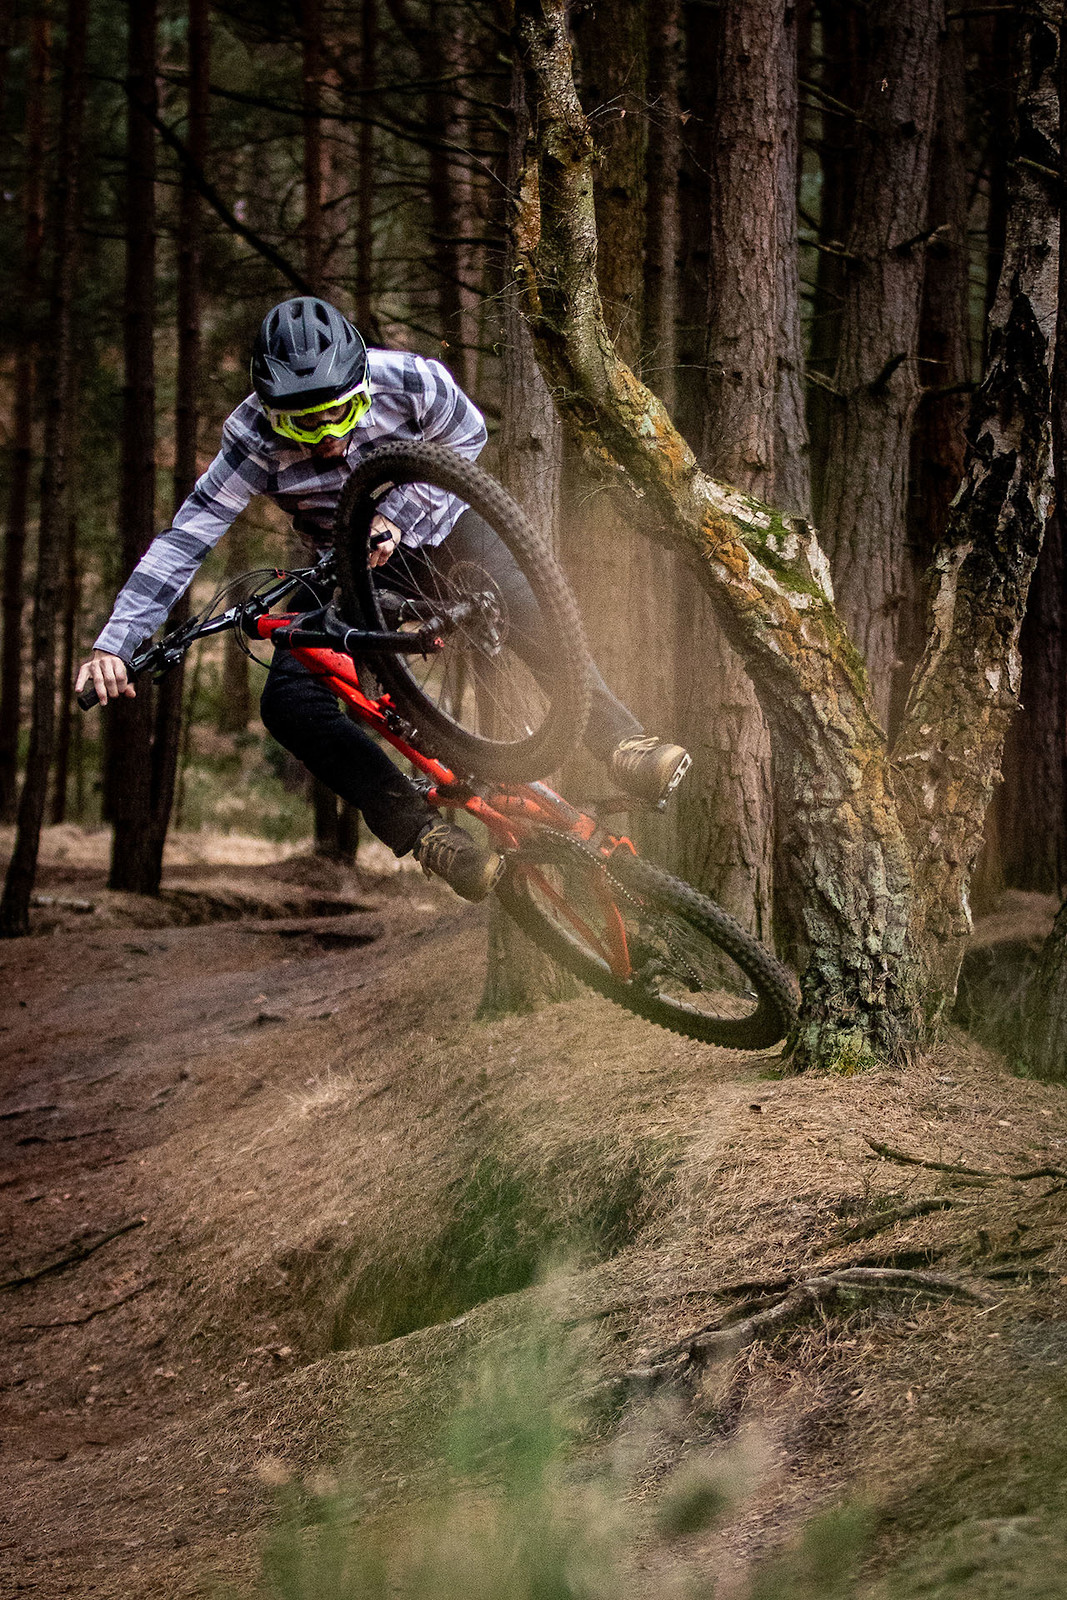 Front tire check - cagreenwood - Mountain Biking Pictures - Vital MTB